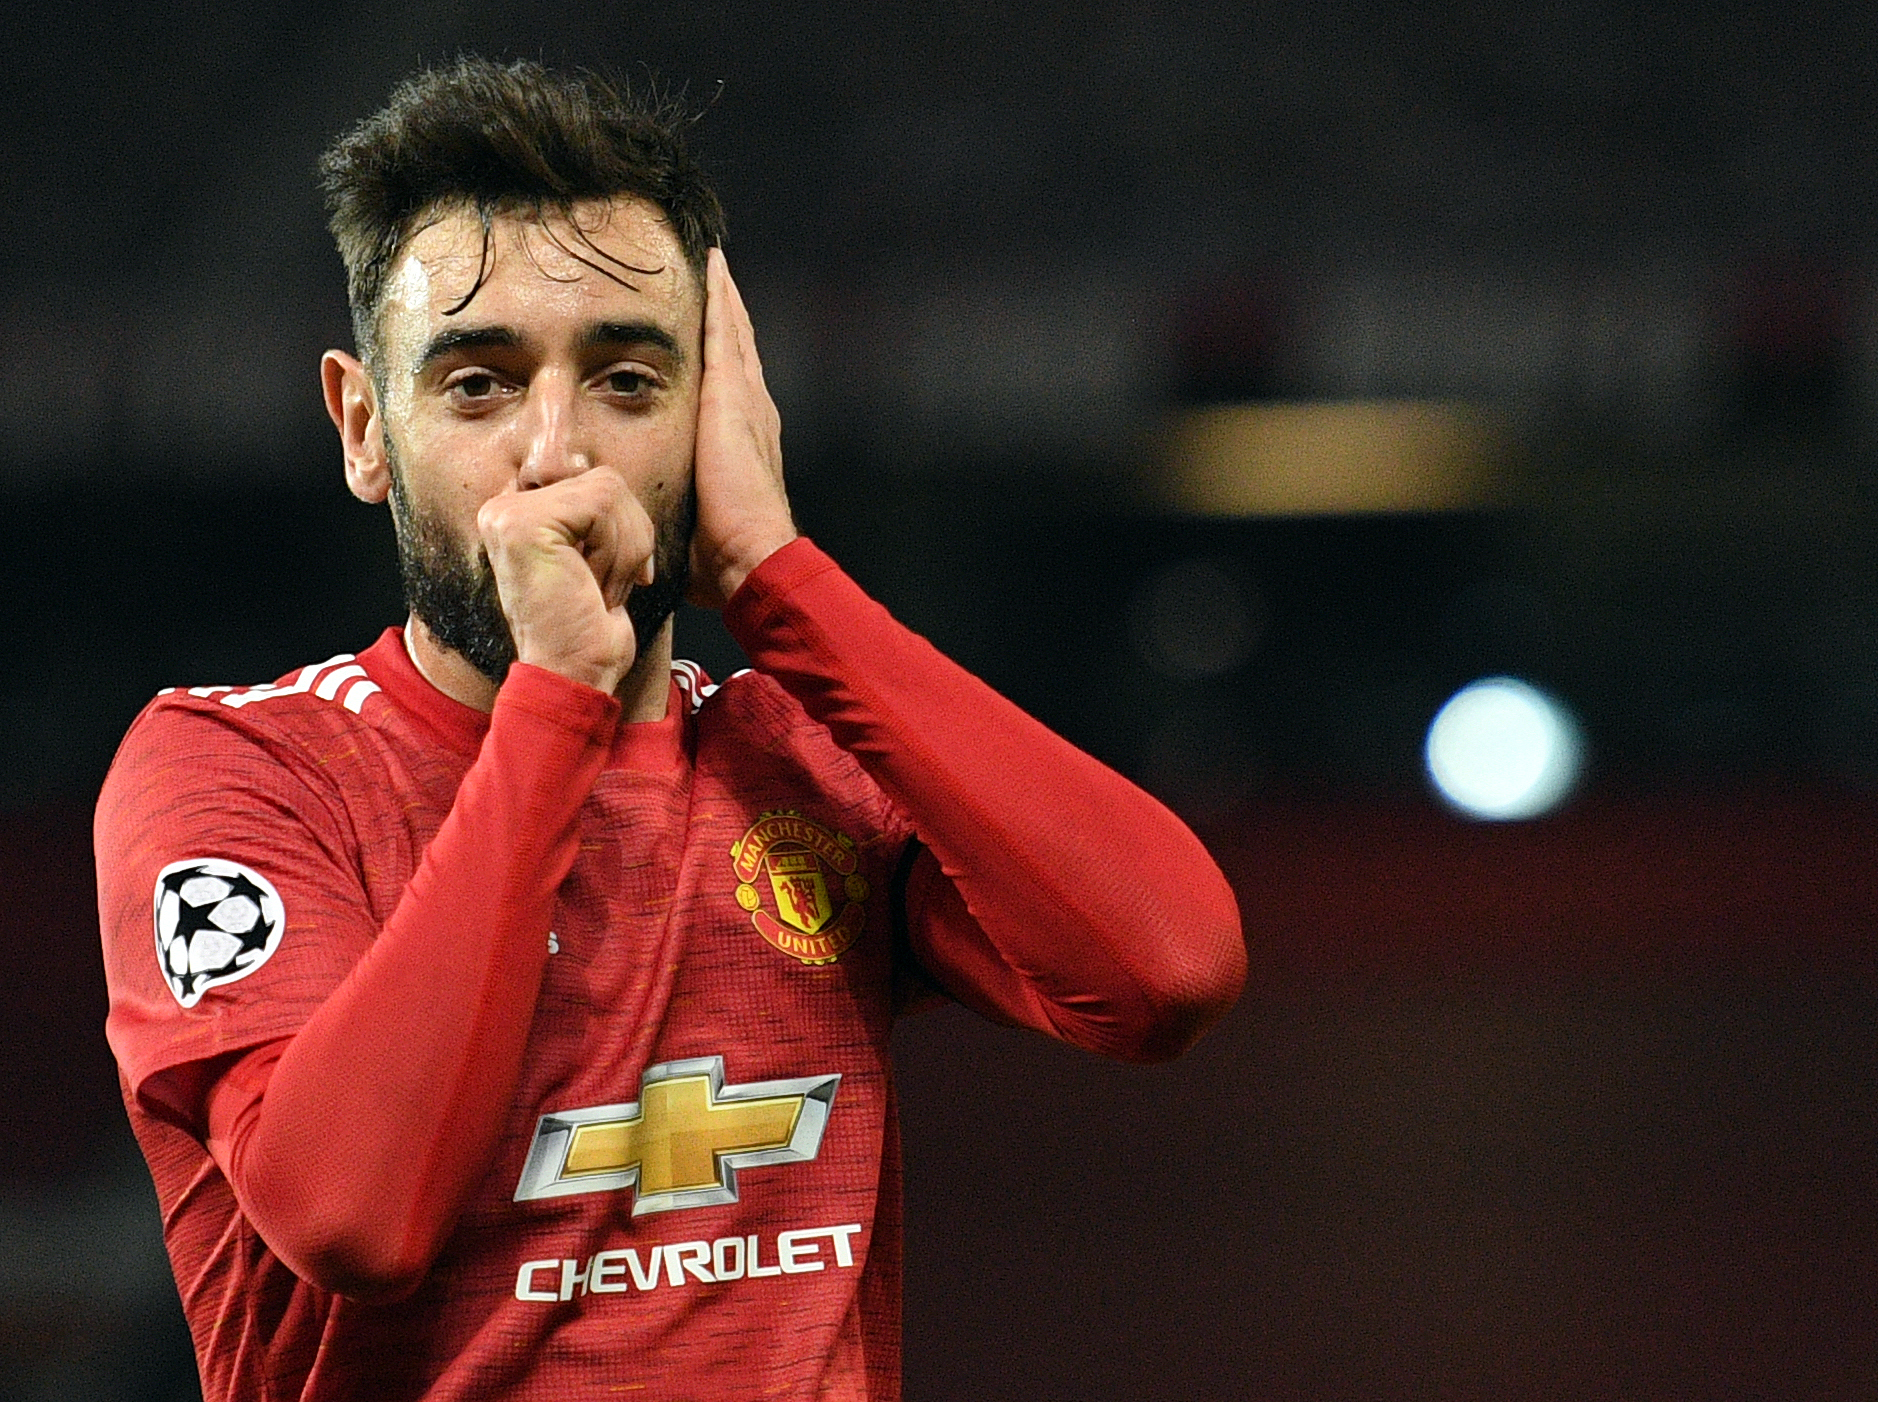 Bruno Fernandes scores stunning goal in Manchester United win but denies himself chance of a hat trick